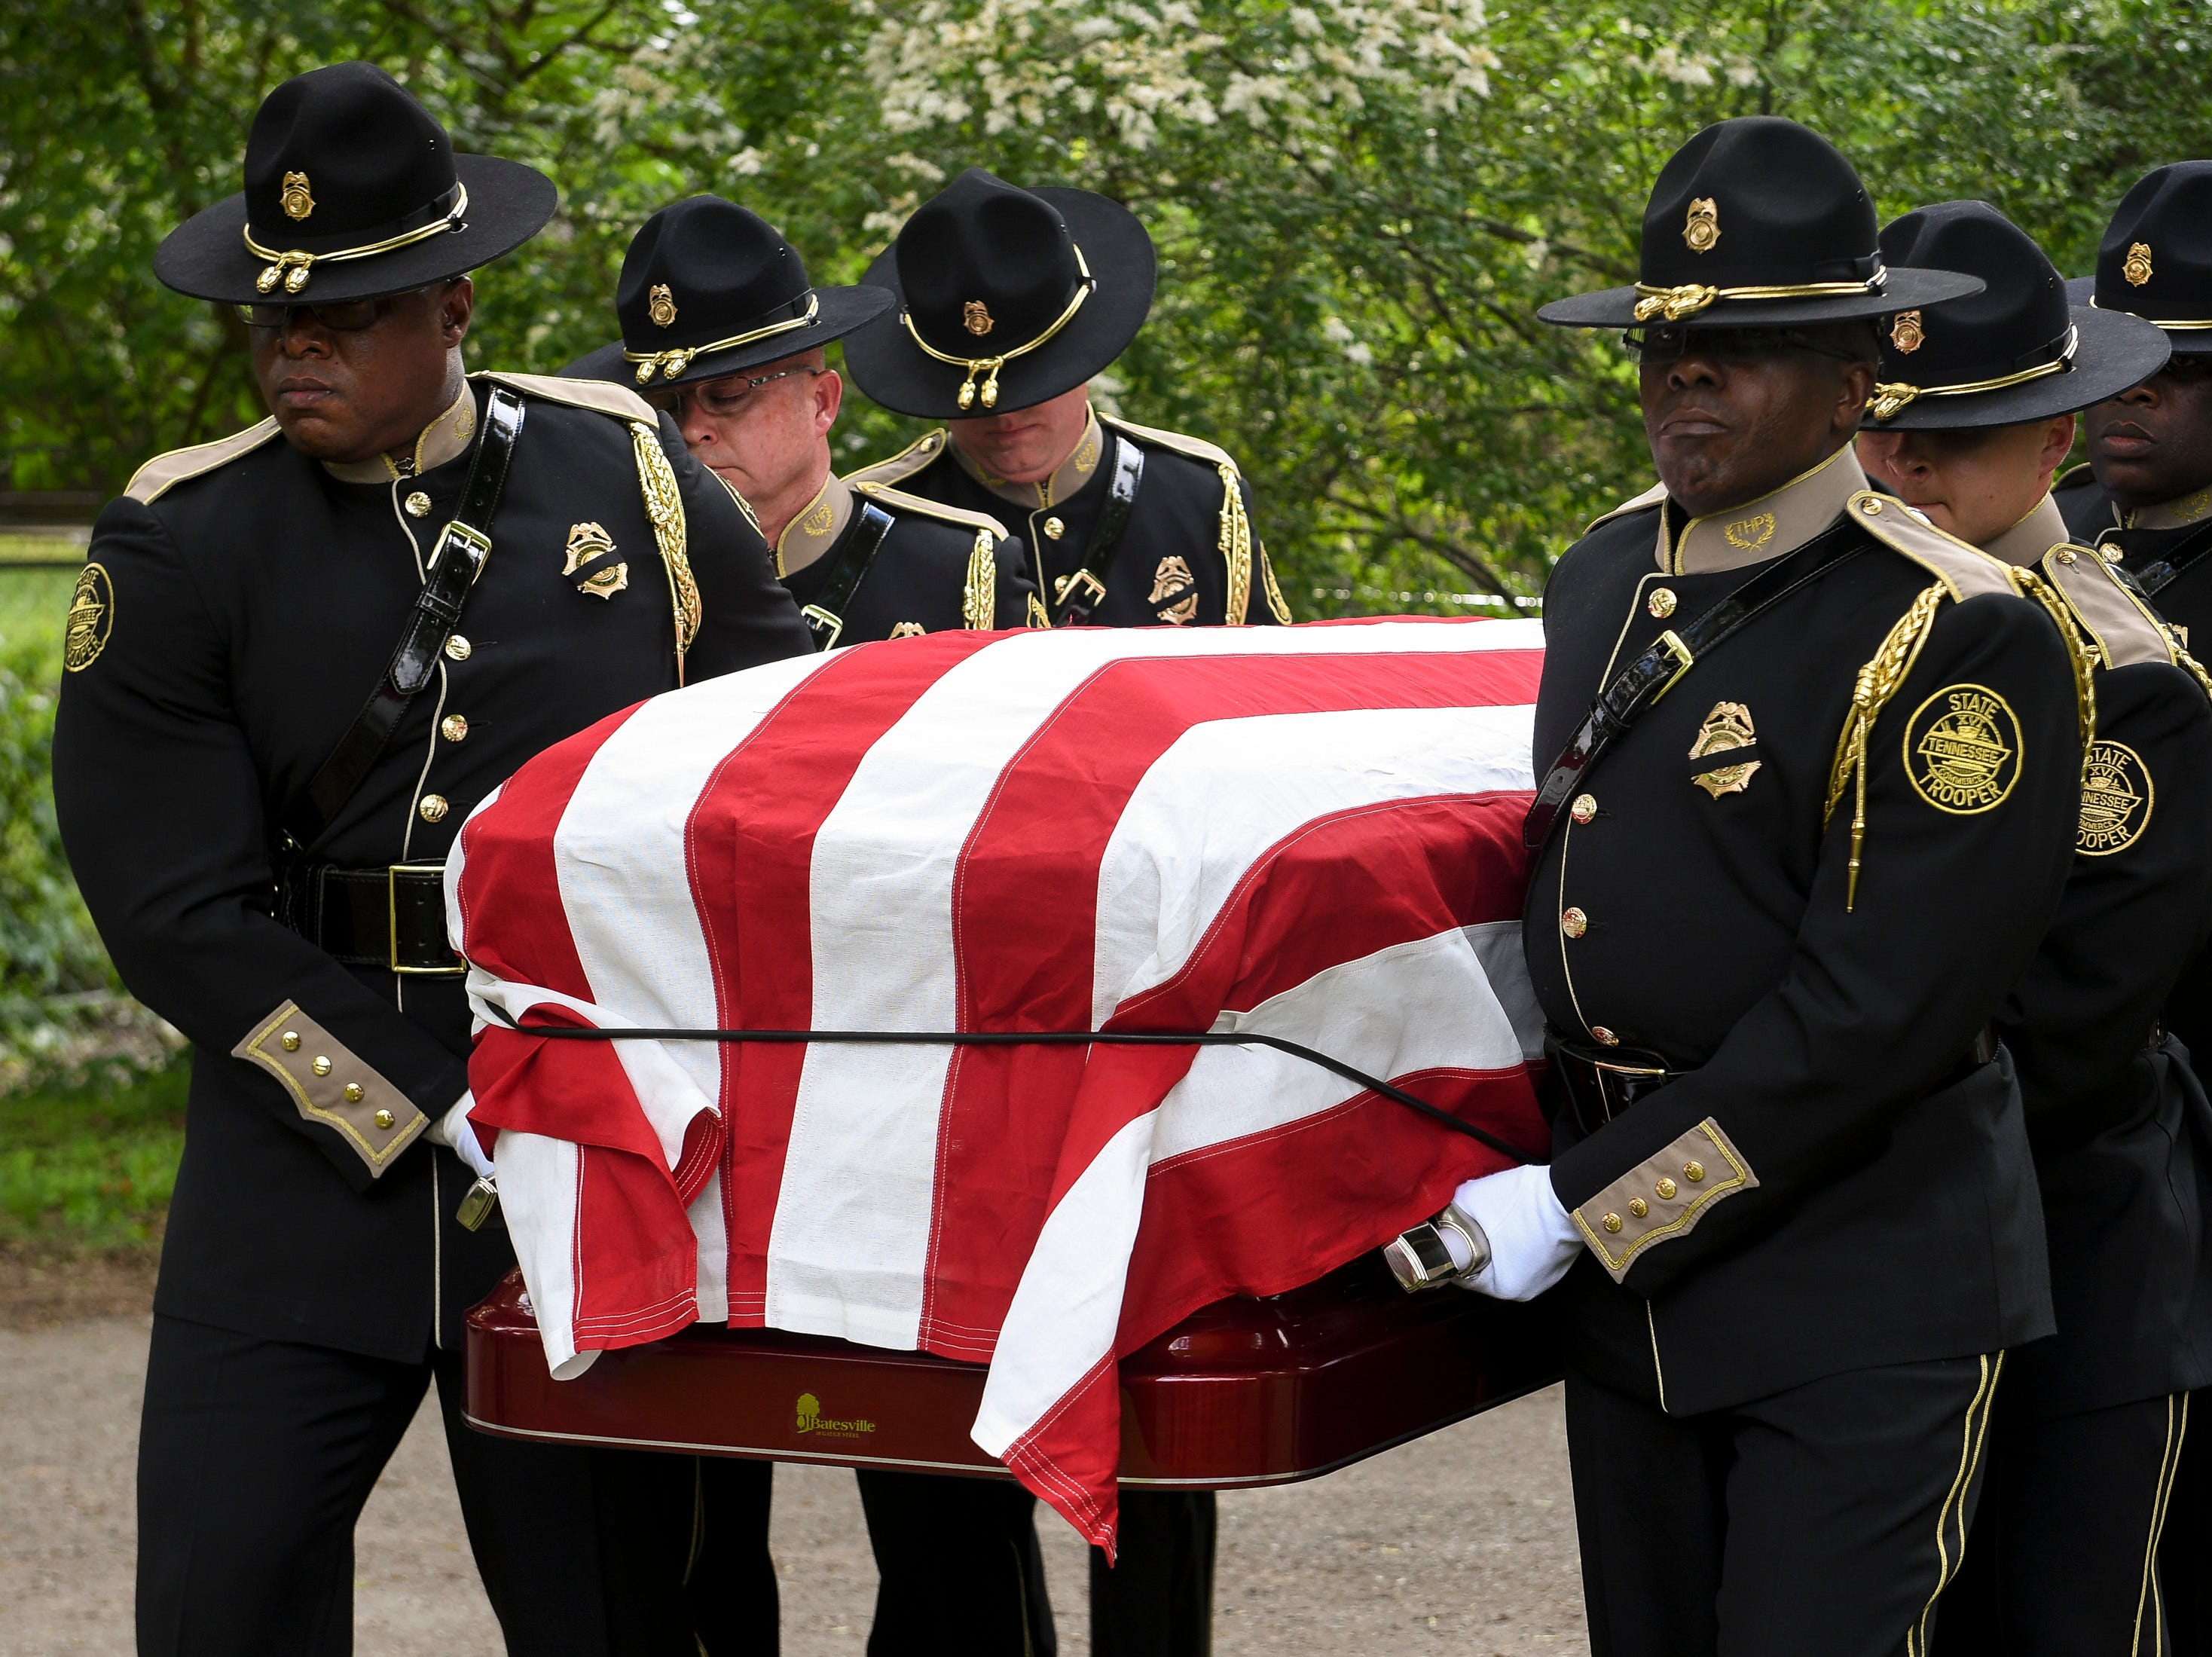 Tennessee State Trooper Matthew Gatti's casket is carried from the hearse at Ridgecrest Cemetery in Jackson, Tenn., Monday, May 13, 2019. Gatti died in the line of duty in an accident while responding to a car fire on I-40 in Madison County on May 6.